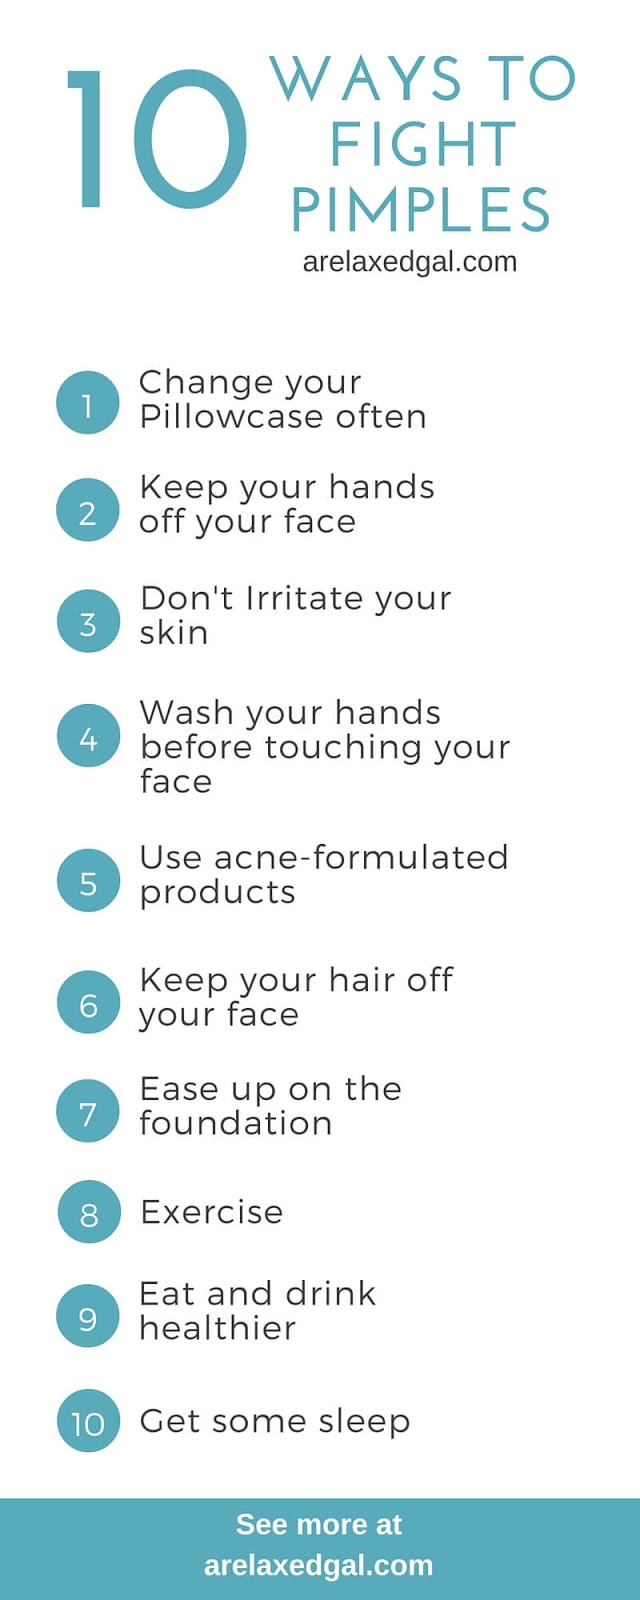 Don't let the pimples win. Use these tips in this infographic to put a stop to them and keep your skin clear. You can see more about these tips at arelaxedgal.com.